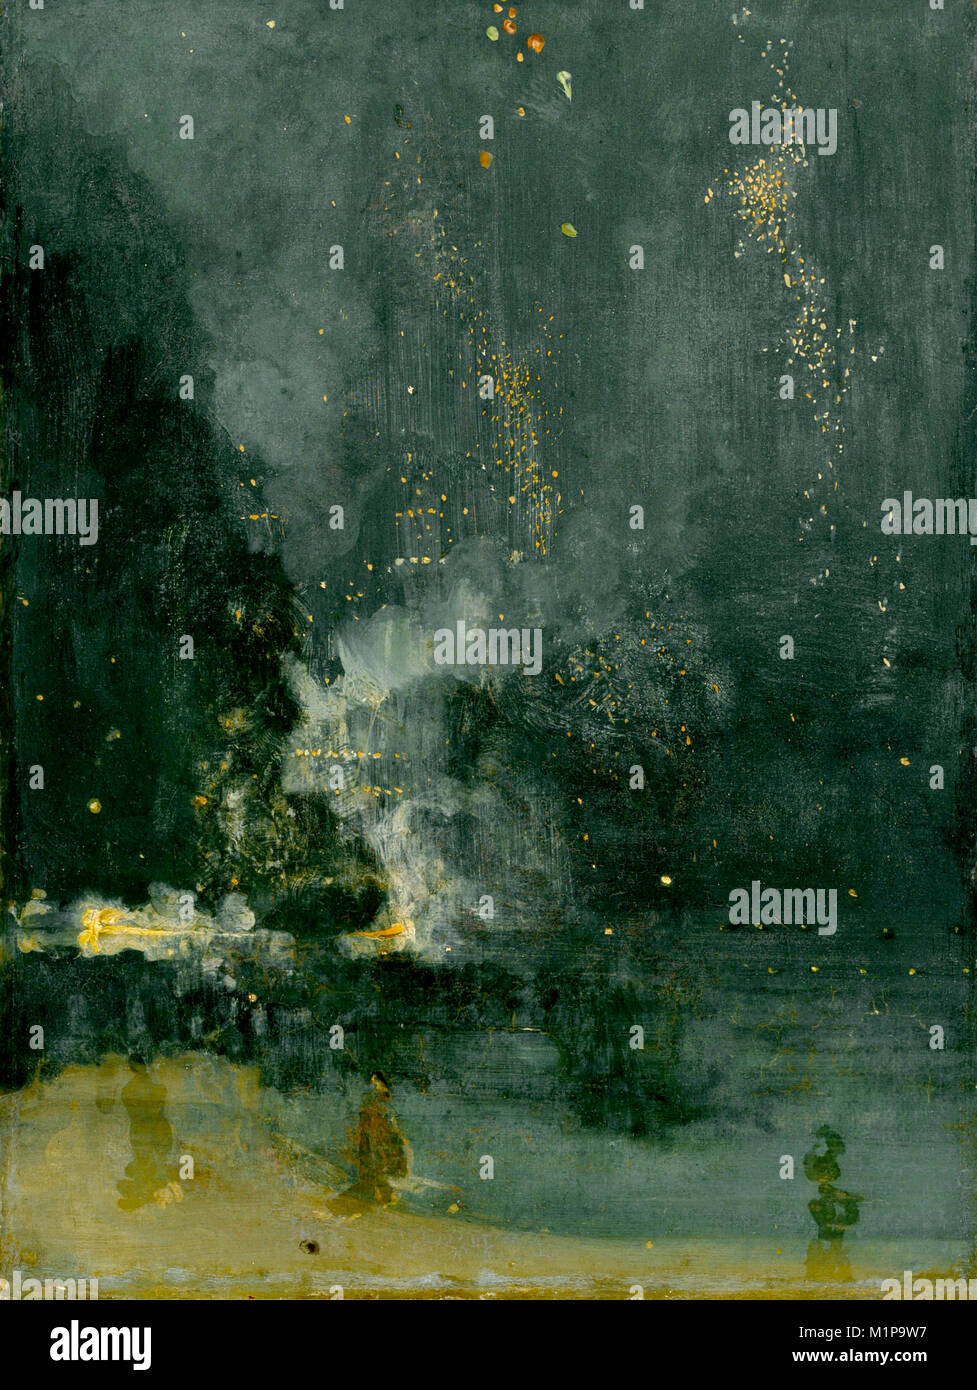 Nocturne in Black and Gold: The Falling Rocket (1874), by James Abbott McNeill Whistler - Stock Image